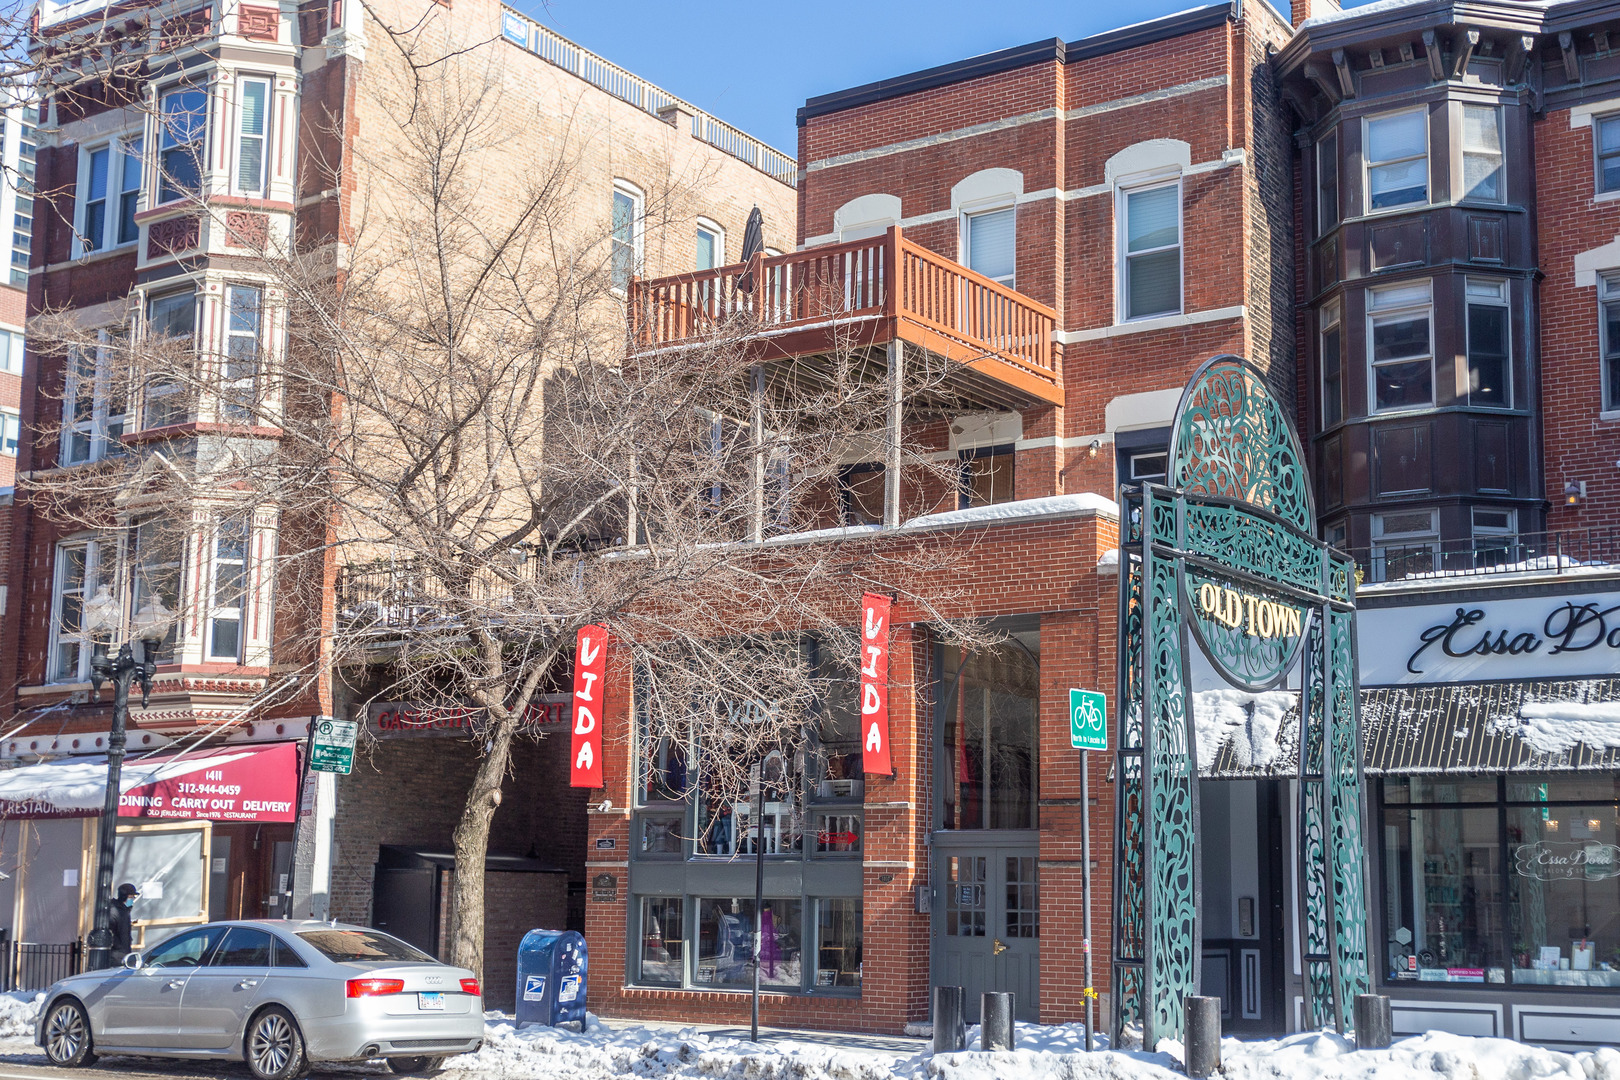 Rarely available commercial condo space along Wells Street in the heart of Old Town. About 1400 sf d